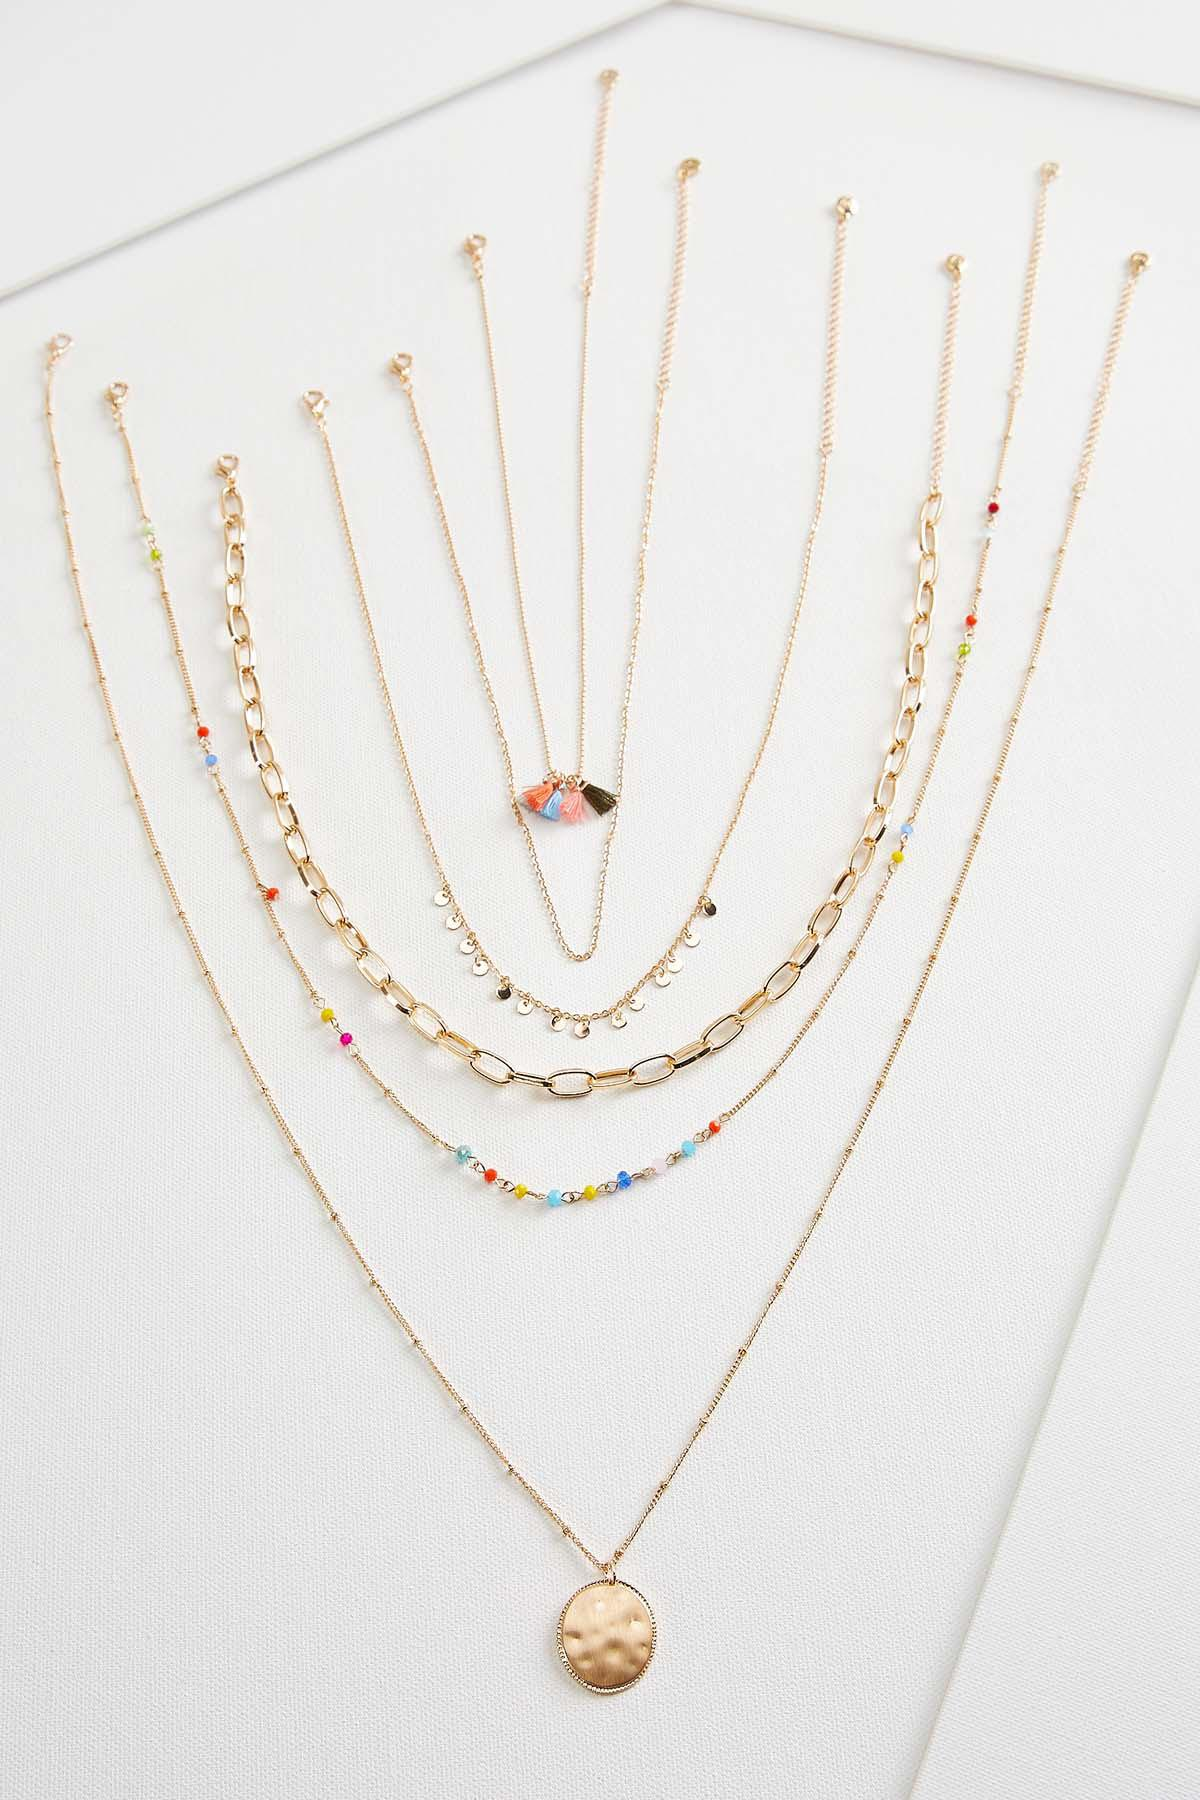 Delicate And Dainty Layered Necklace